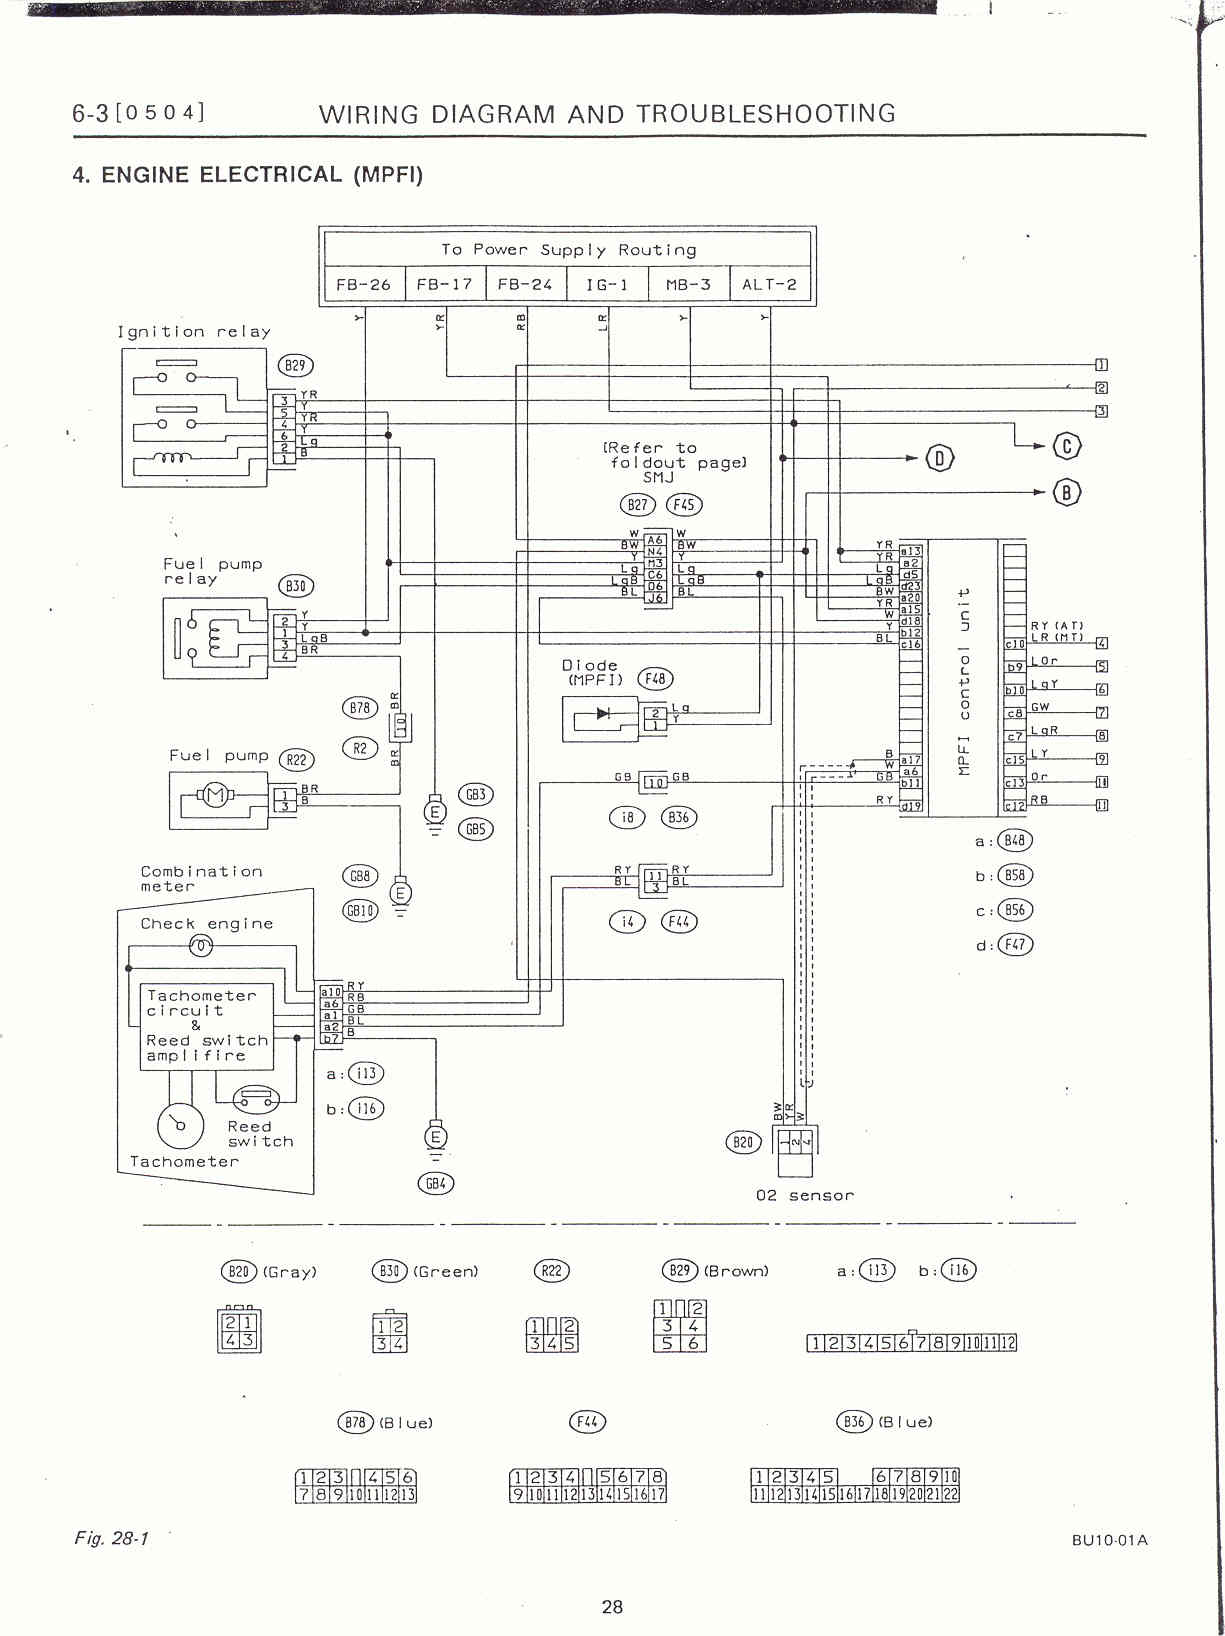 2013 Subaru Outback Wiring Diagrams 1993 Impreza Engine Diagram Guide And Troubleshooting Of Todays Rh 4 12 1813weddingbarn Com